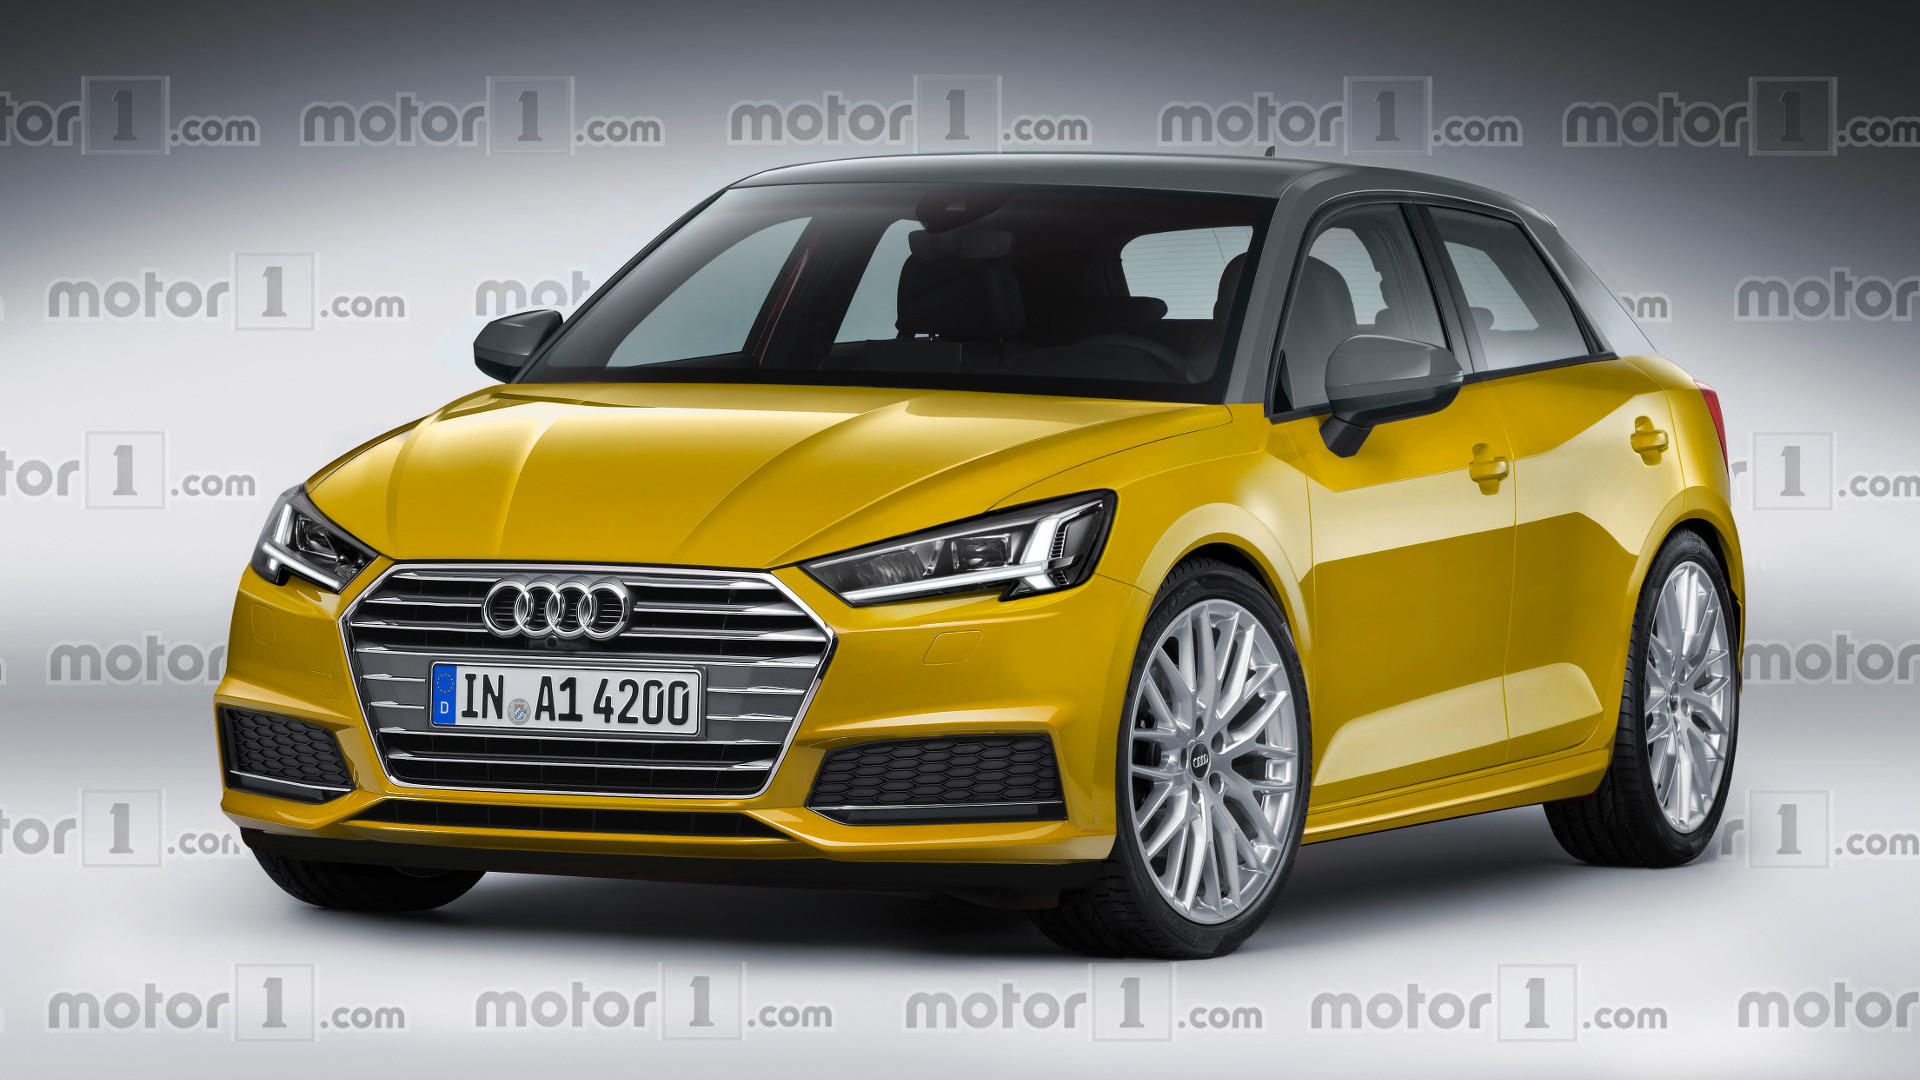 Audi A1 New Model >> New Audi A1 speculatively rendered